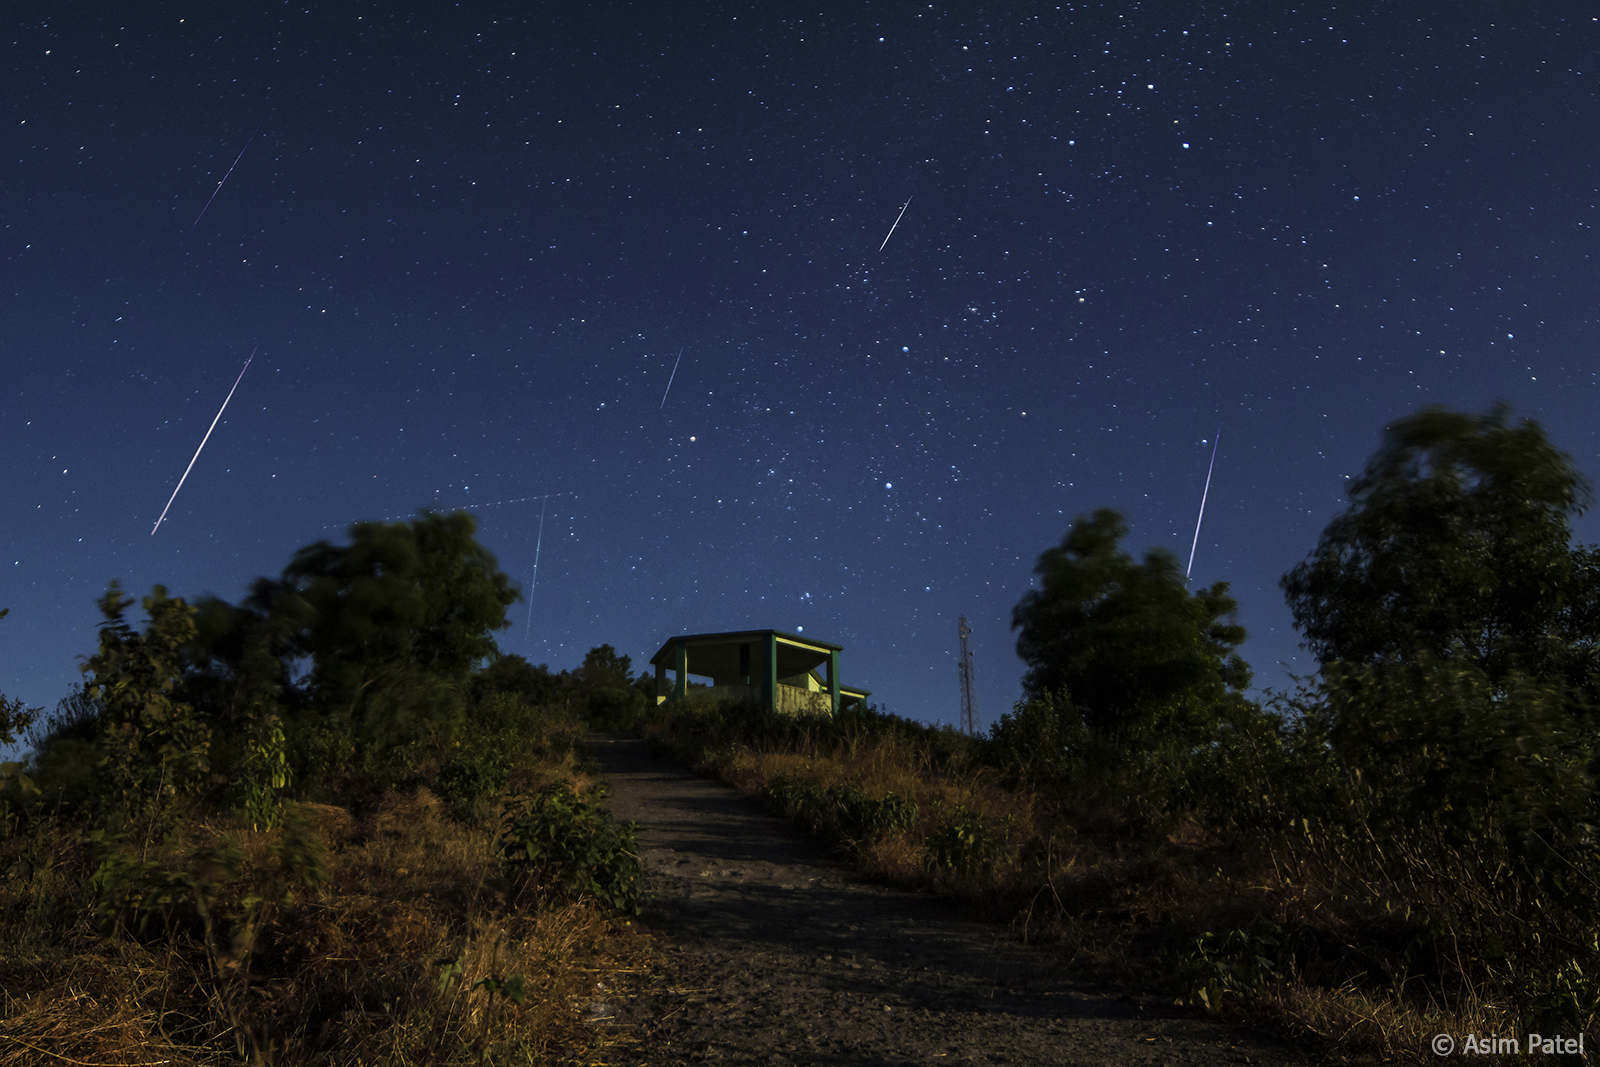 Skywatchers can see this year's best meteor shower next week